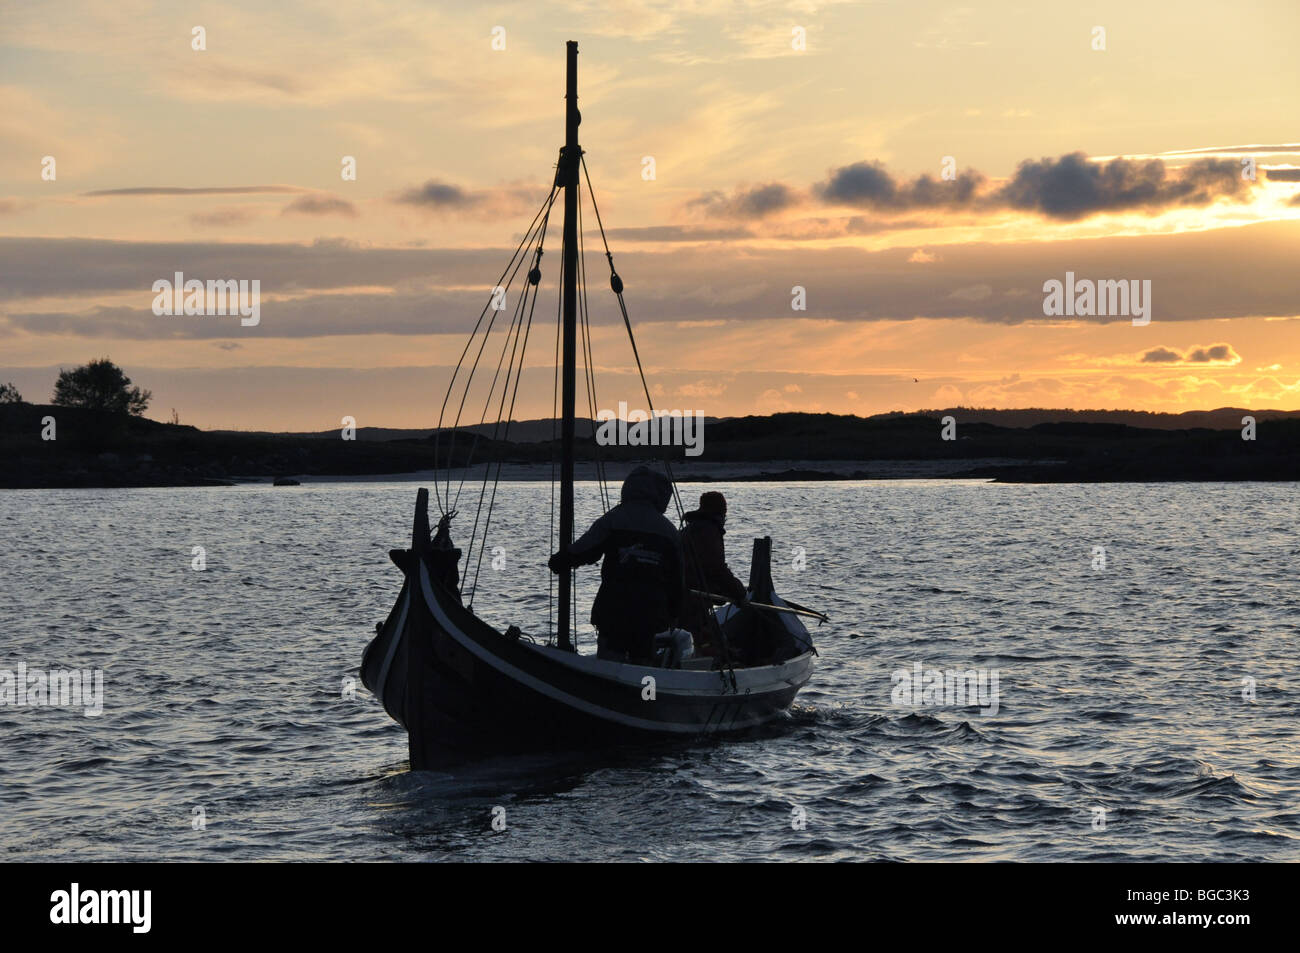 A trip by the light of the midnight sun at Kjerringoy  Handelssted  Salten  Nordland Norway - Stock Image